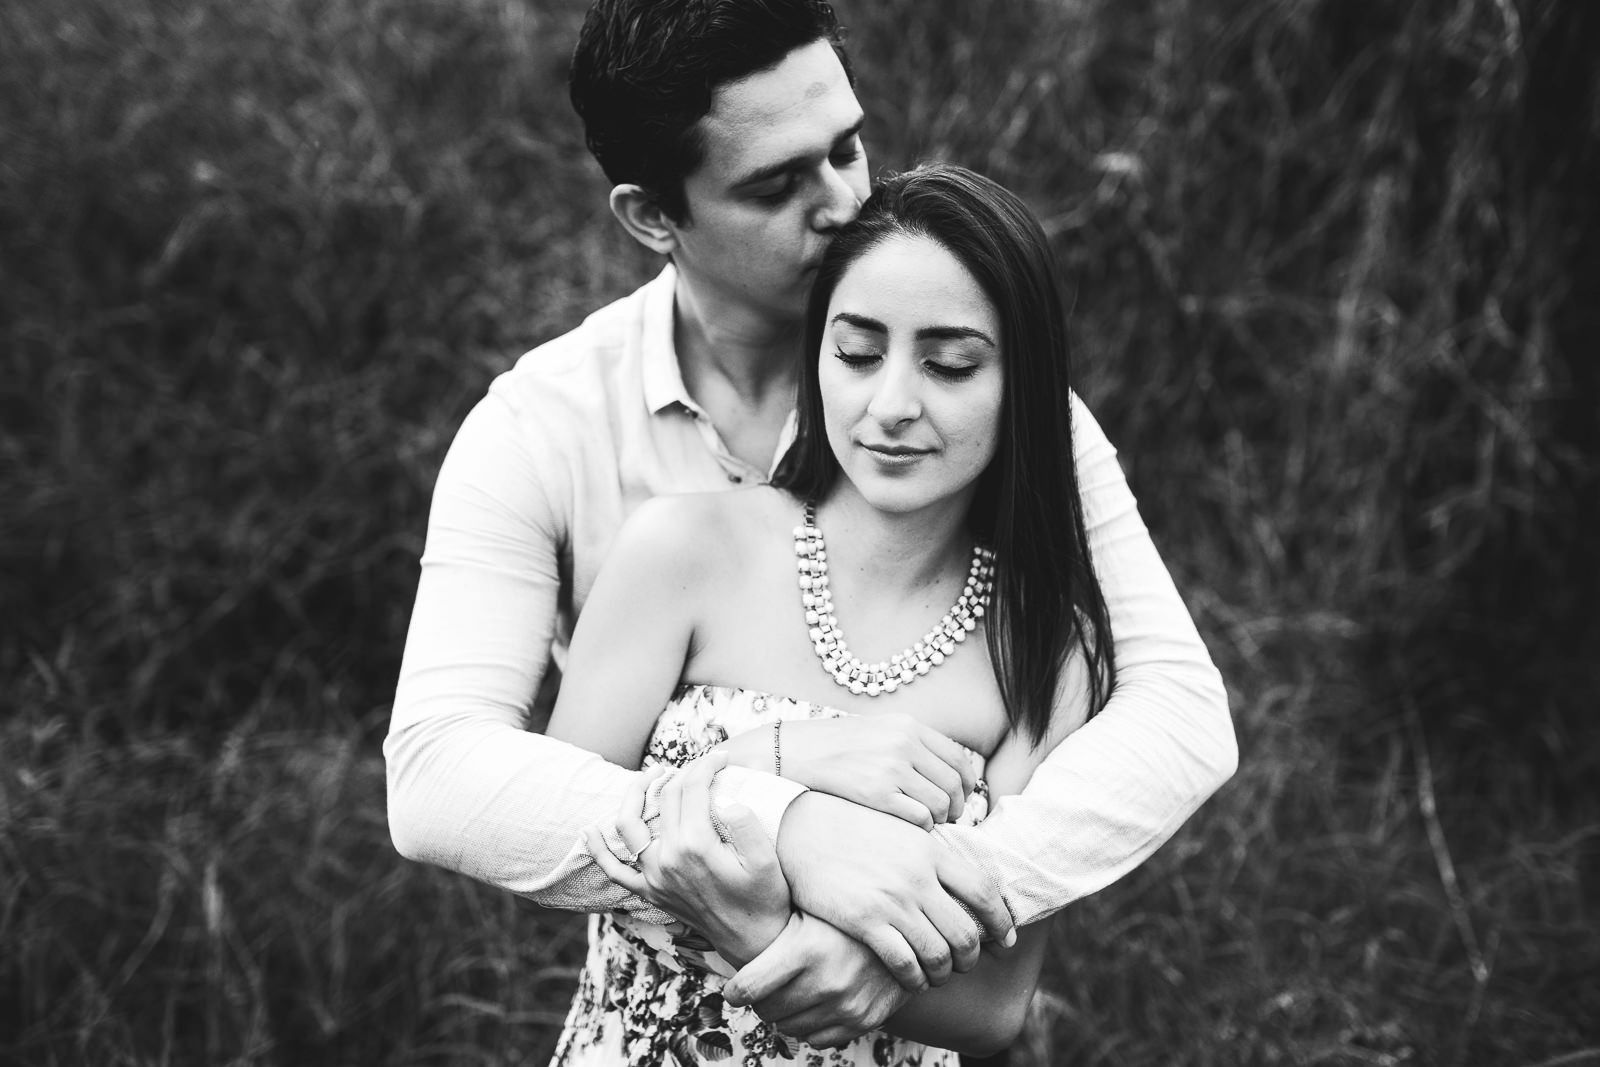 fotografo_mexico_wedding_photographer_esession_preboda_p+a_1